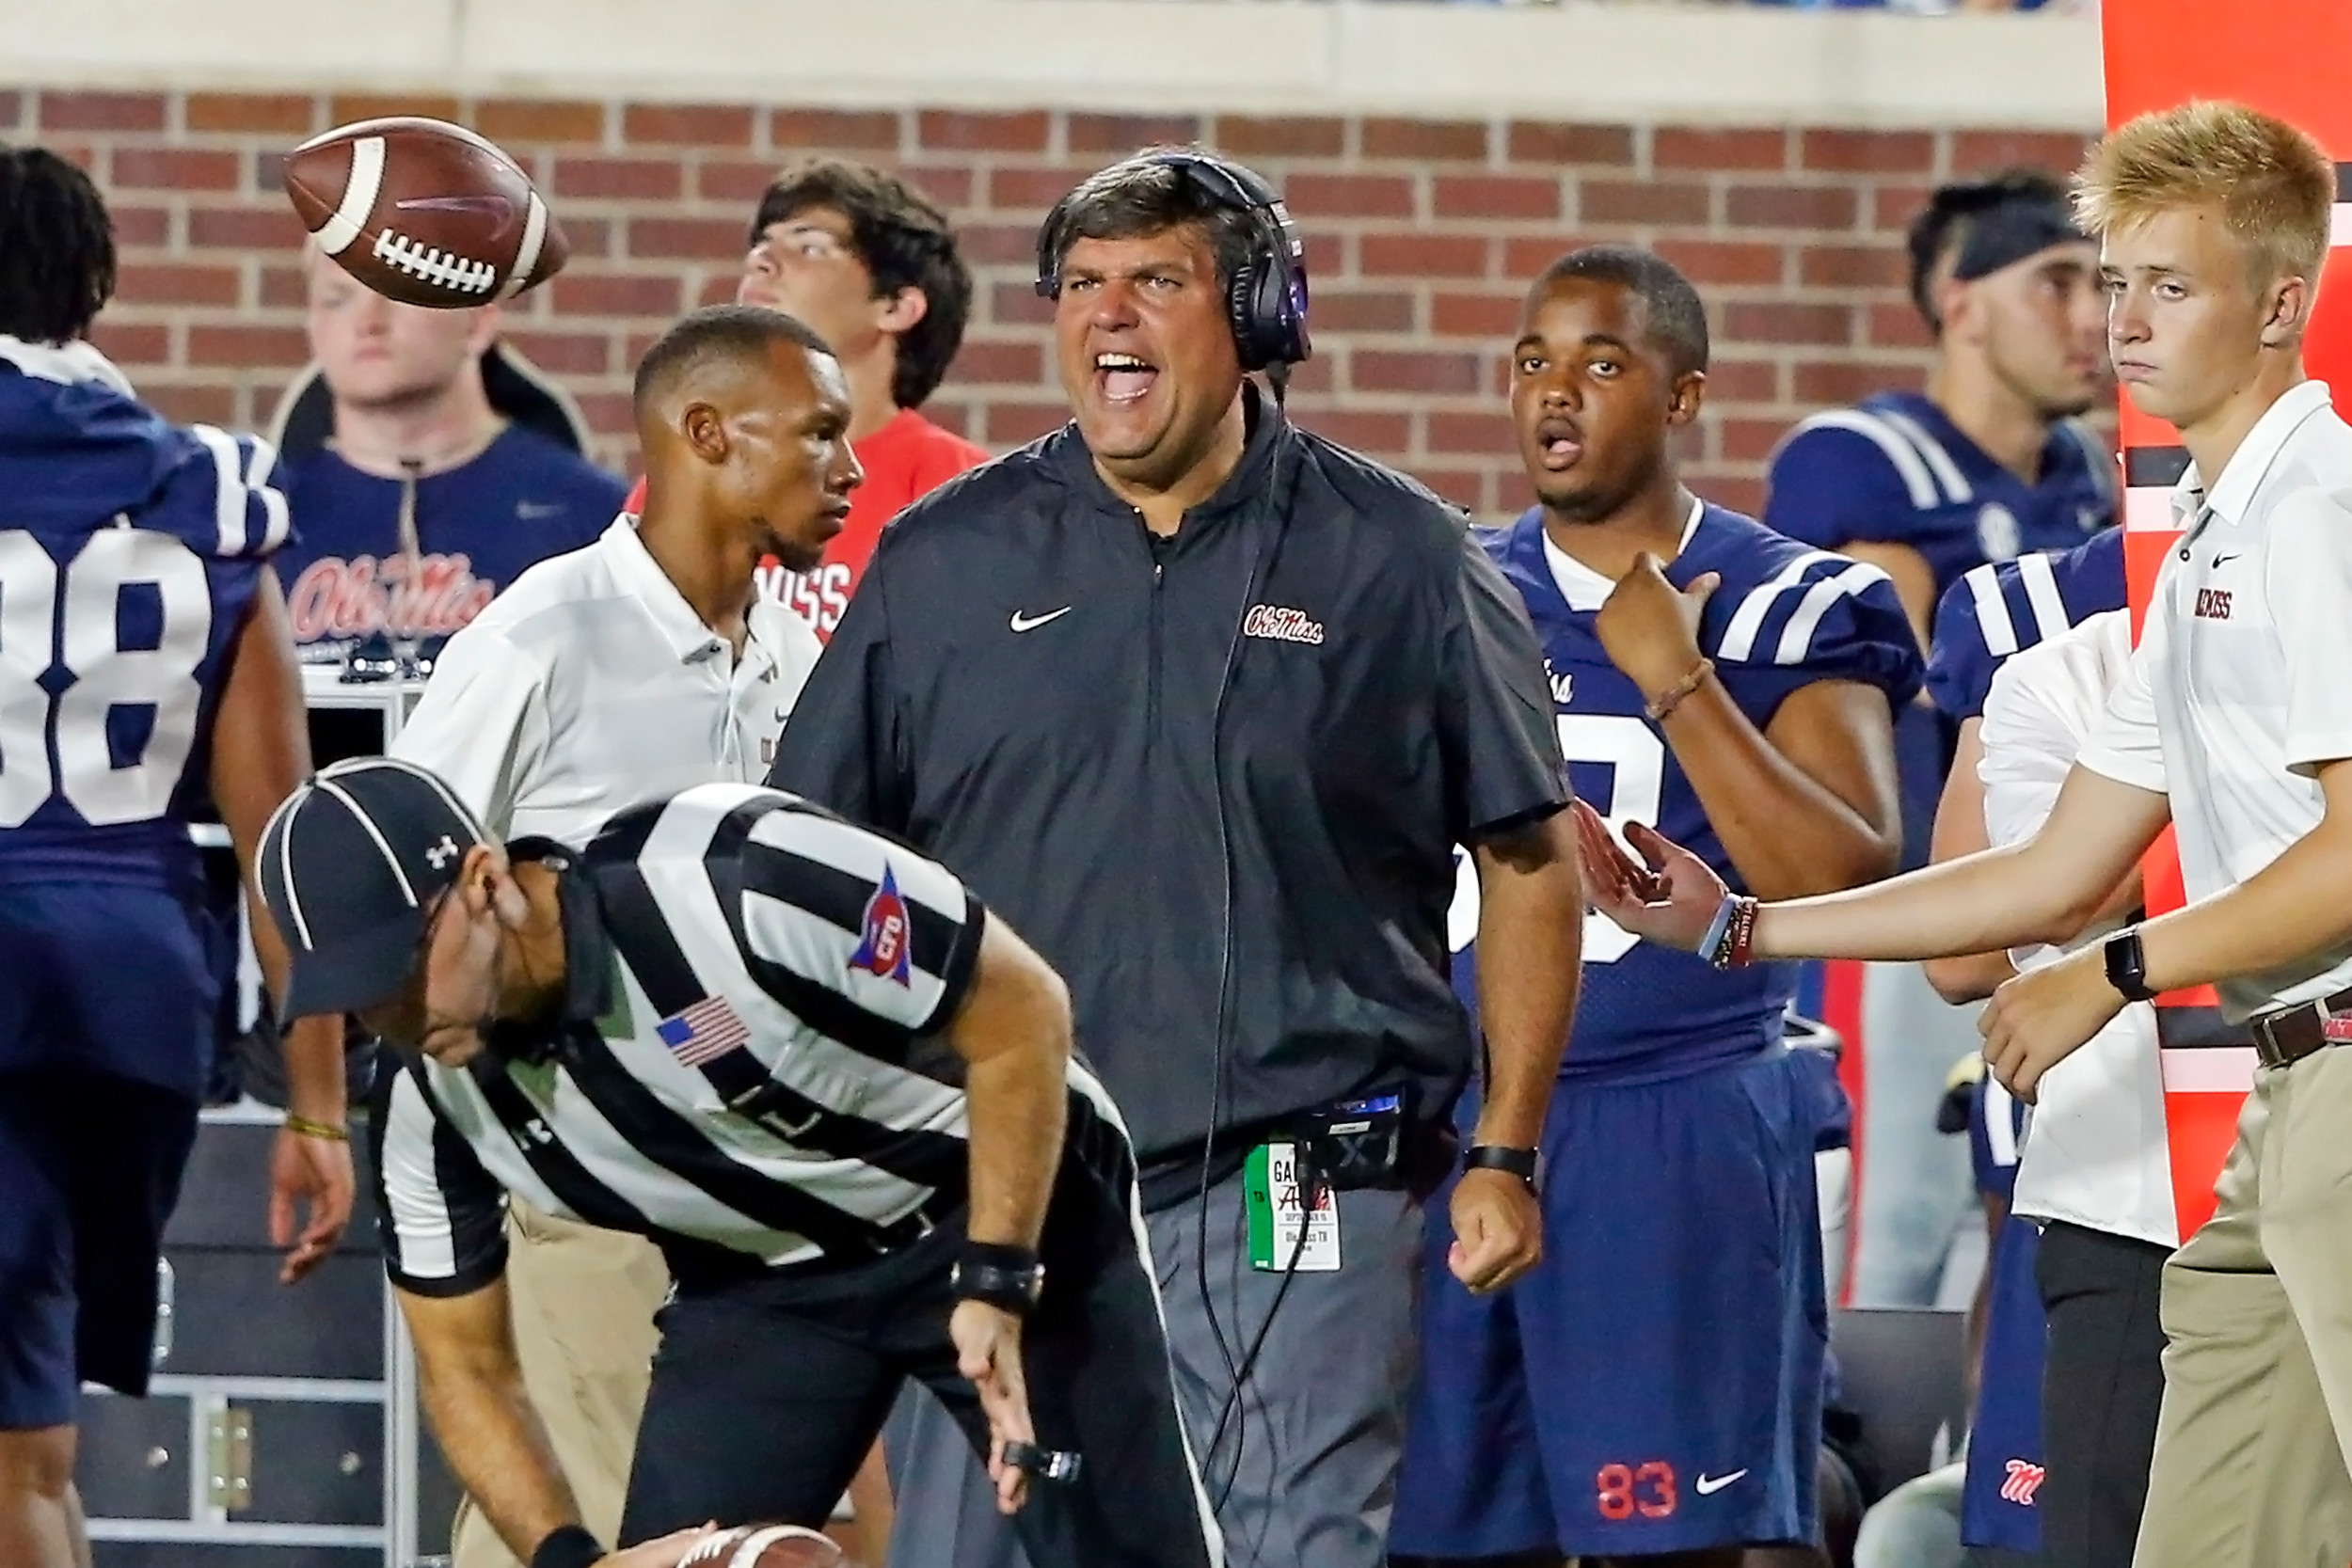 Ole Miss head coach Matt Luke during the game between the University of Alabama and Ole Miss at Vaught-Hemingway Stadium. Jason Clark / Daily Mountain Eagle